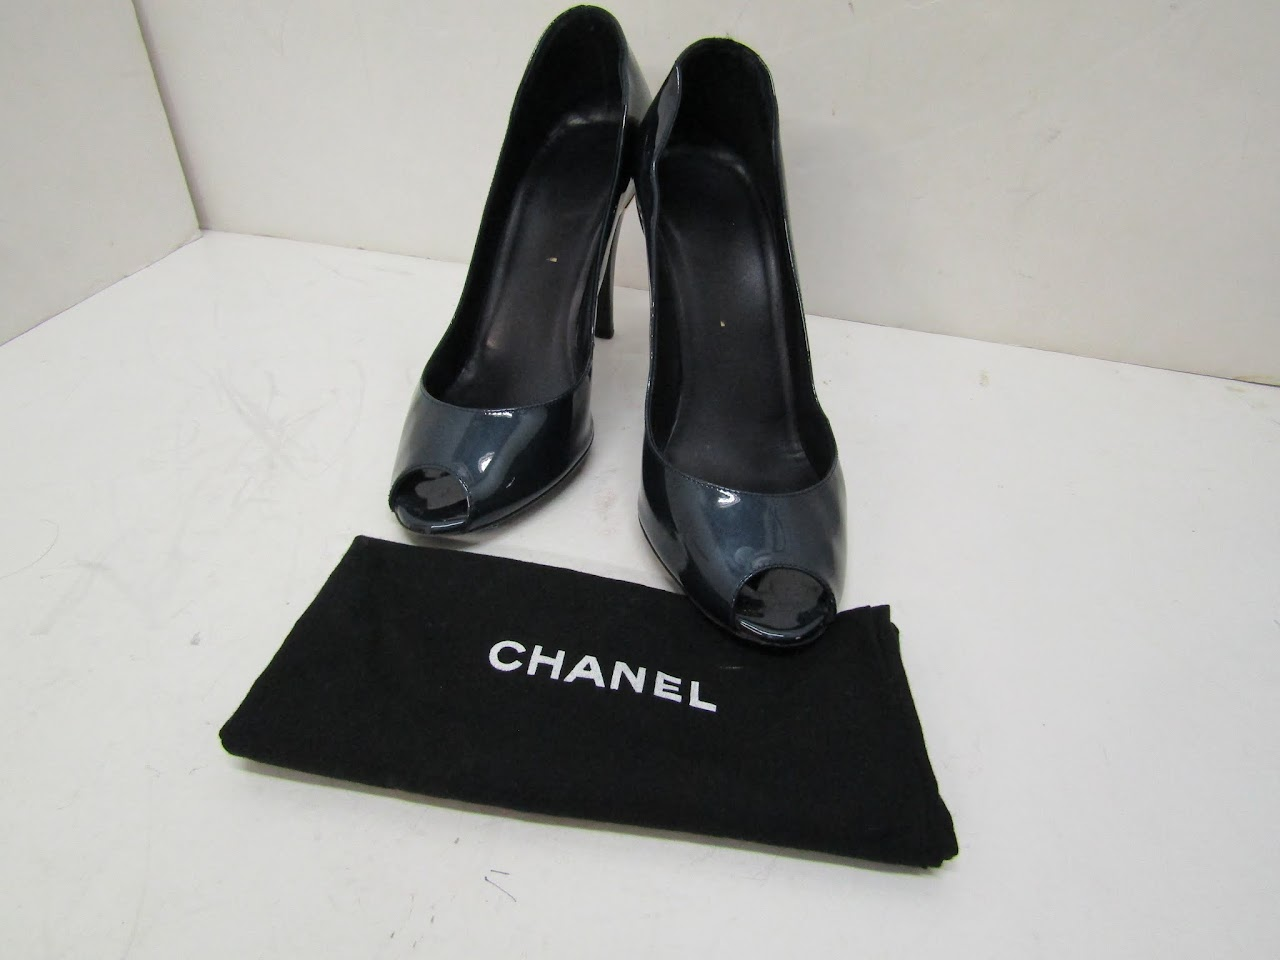 Chanel Peep Toe Heels